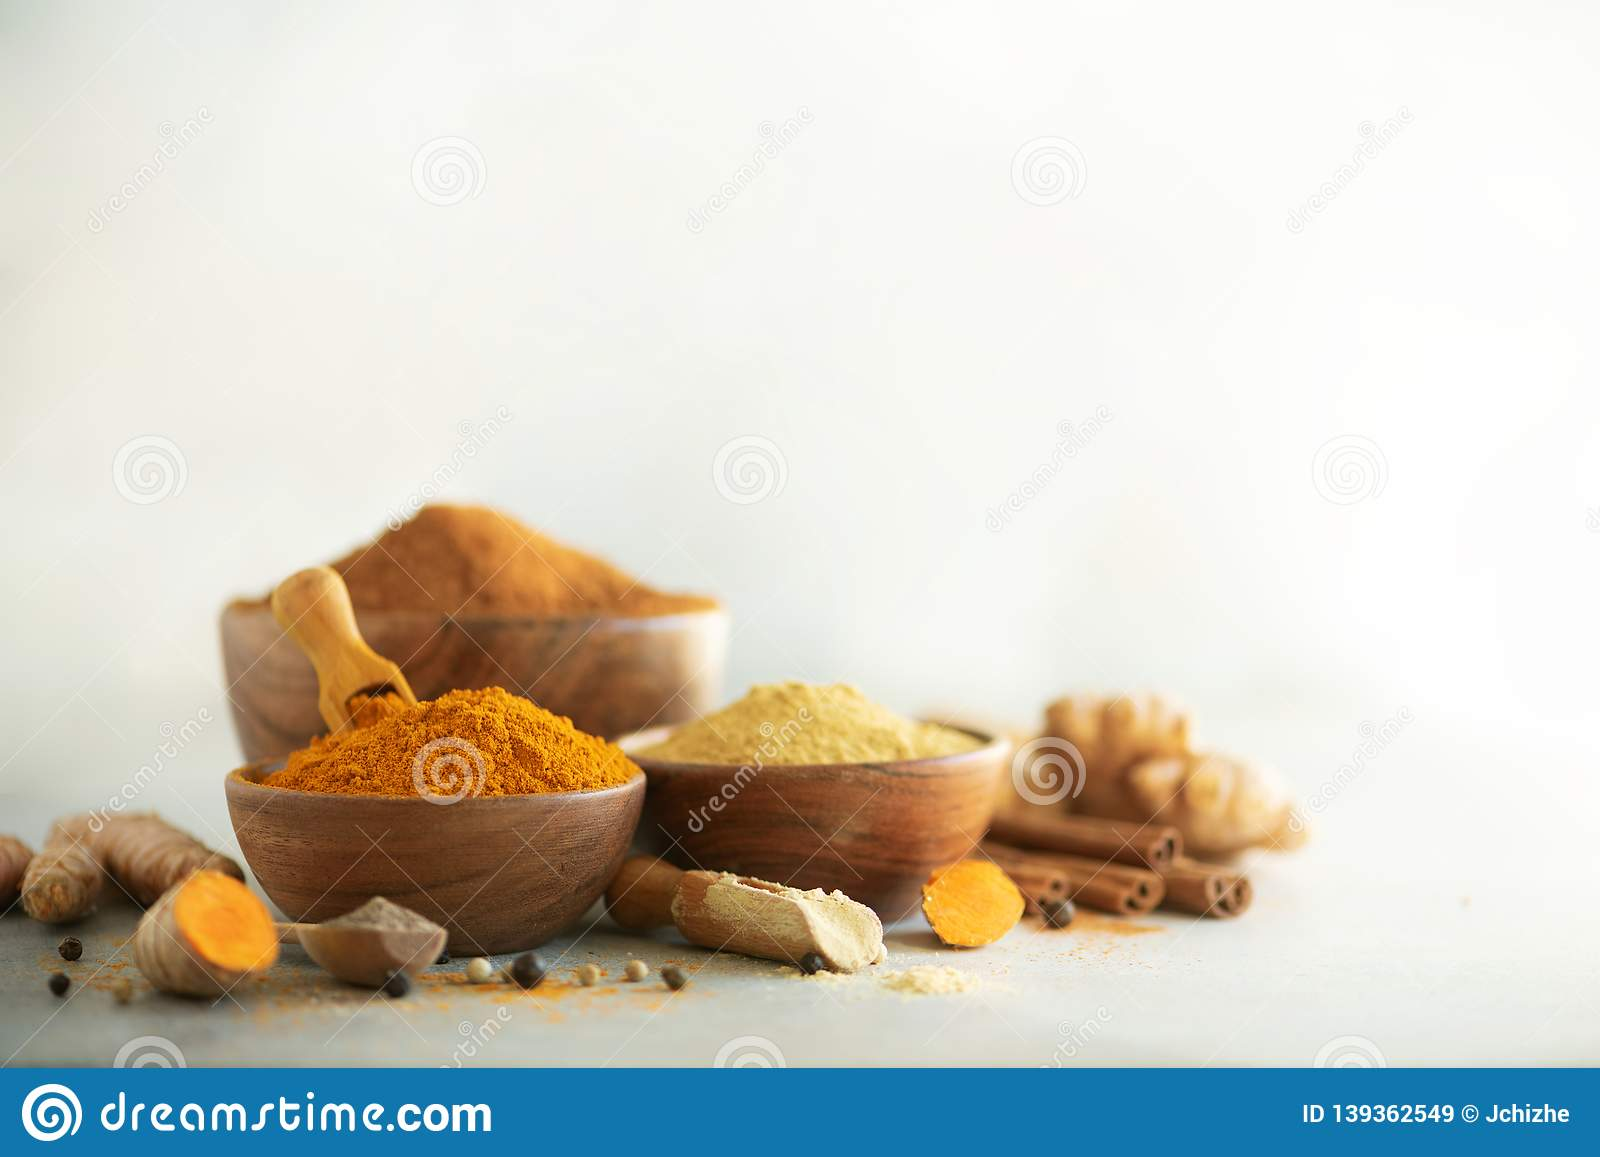 Ingredients for hot ayurvedic drink. Turmeric powder, curcuma root, cinnamon, ginger, lemon over grey background. Copy